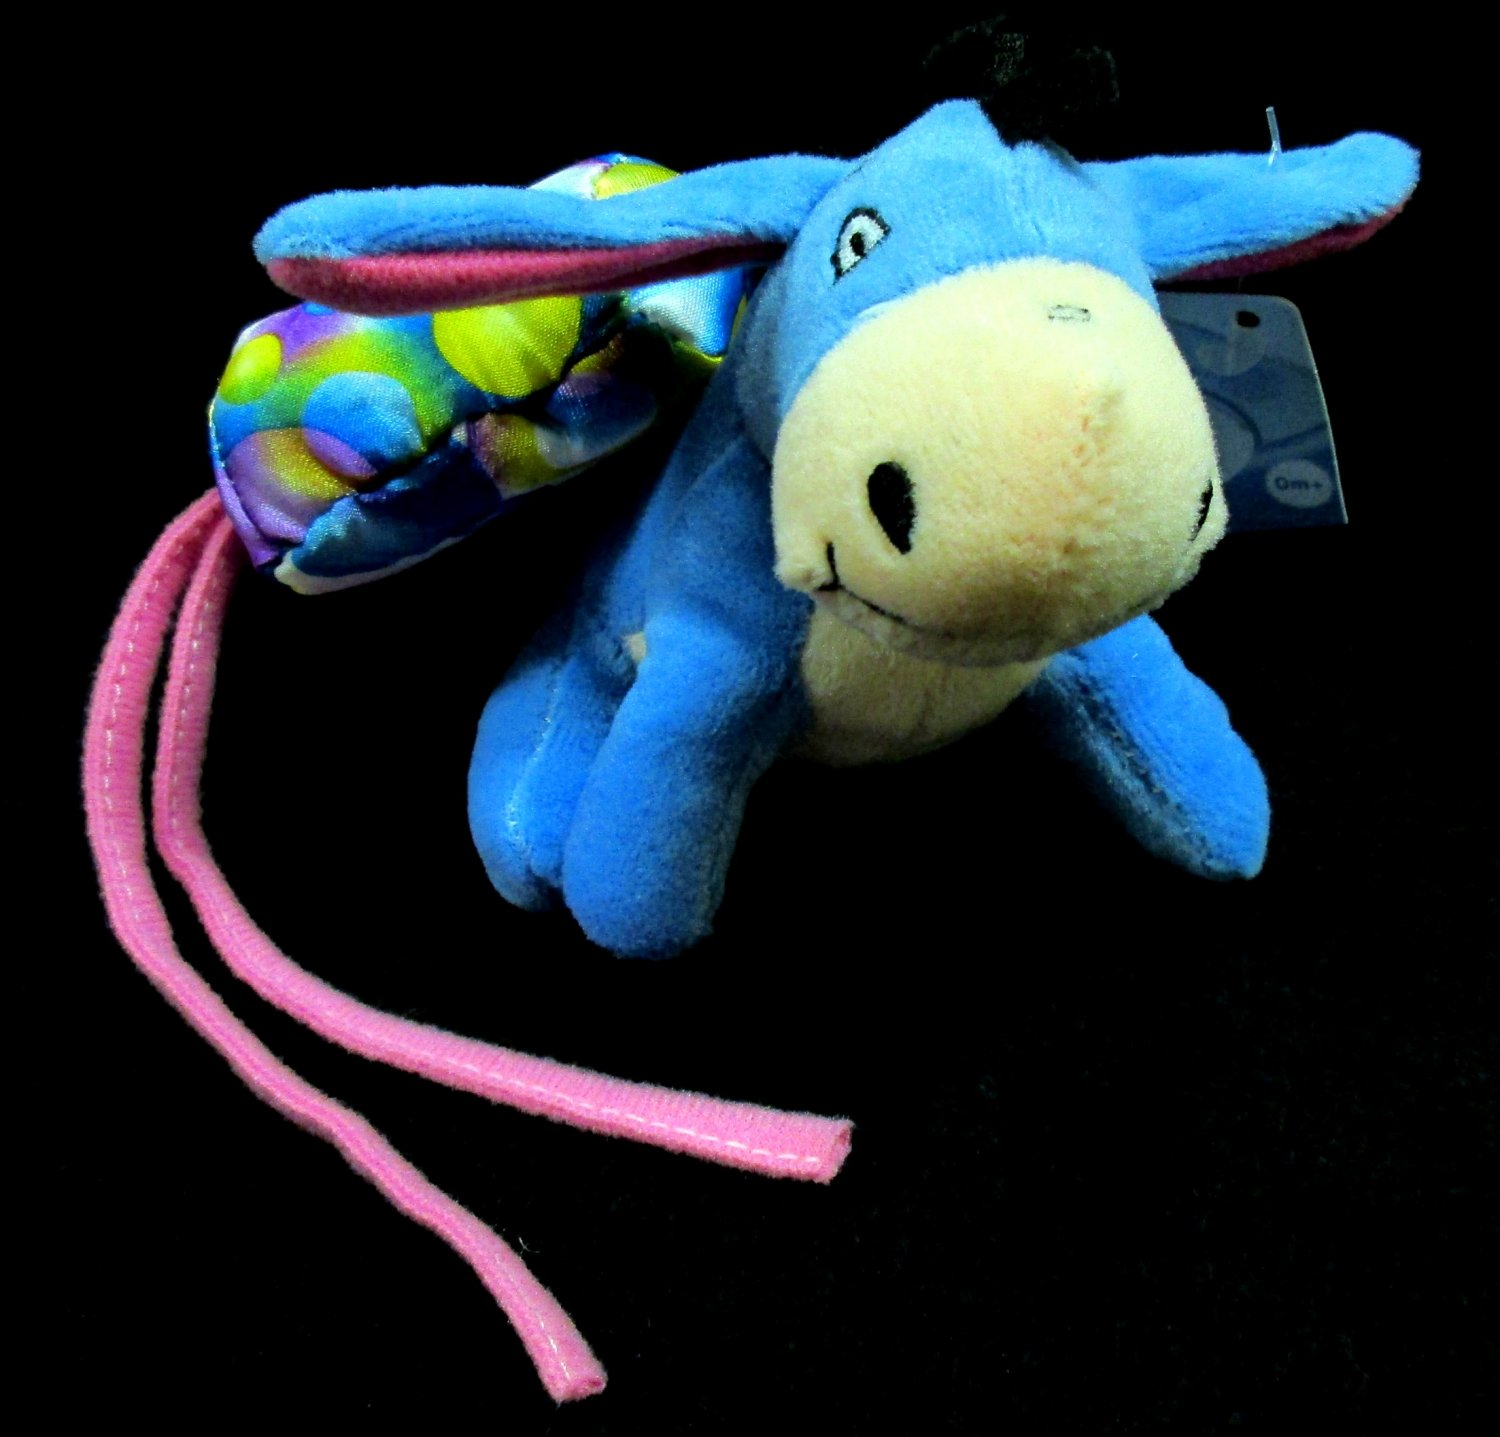 Disney Baby Pooh Bear Pals Eeyore Plush Toy Hanging Crib Rattle Cuddle Buddy